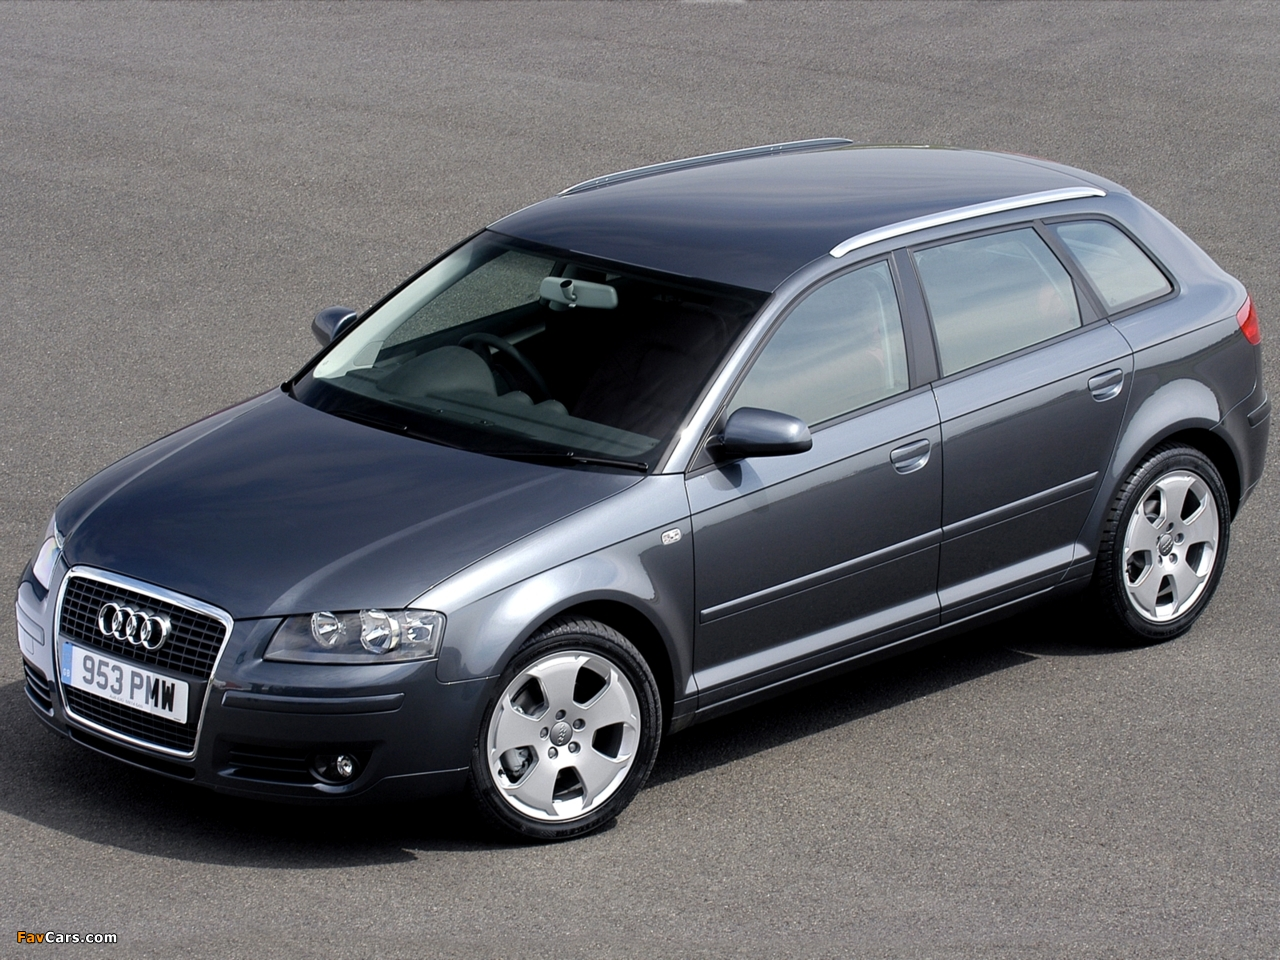 audi a3 sportback 2 0 tdi uk spec 8pa 2005 2008 photos. Black Bedroom Furniture Sets. Home Design Ideas